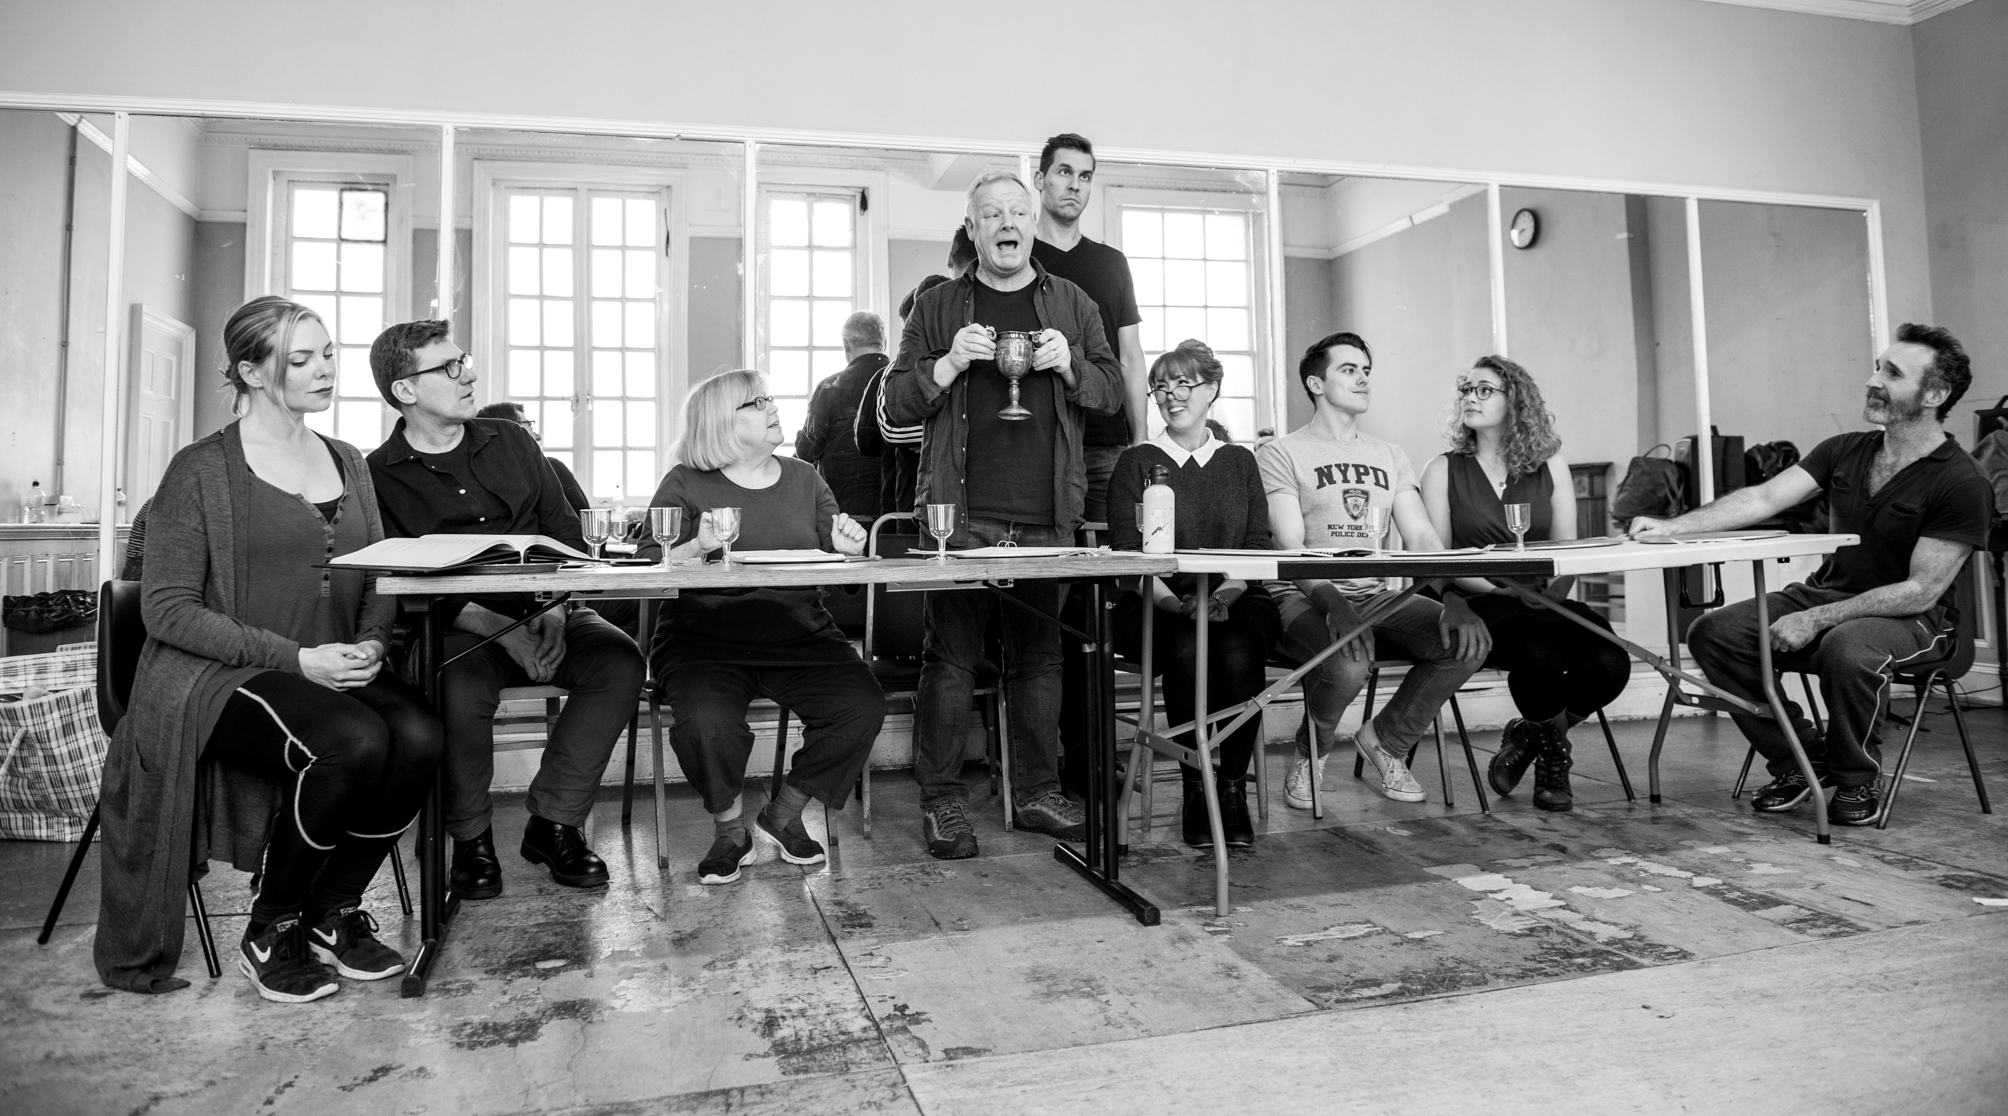 cast-of-addams-family-in-rehearsals_credit-craig-sugden